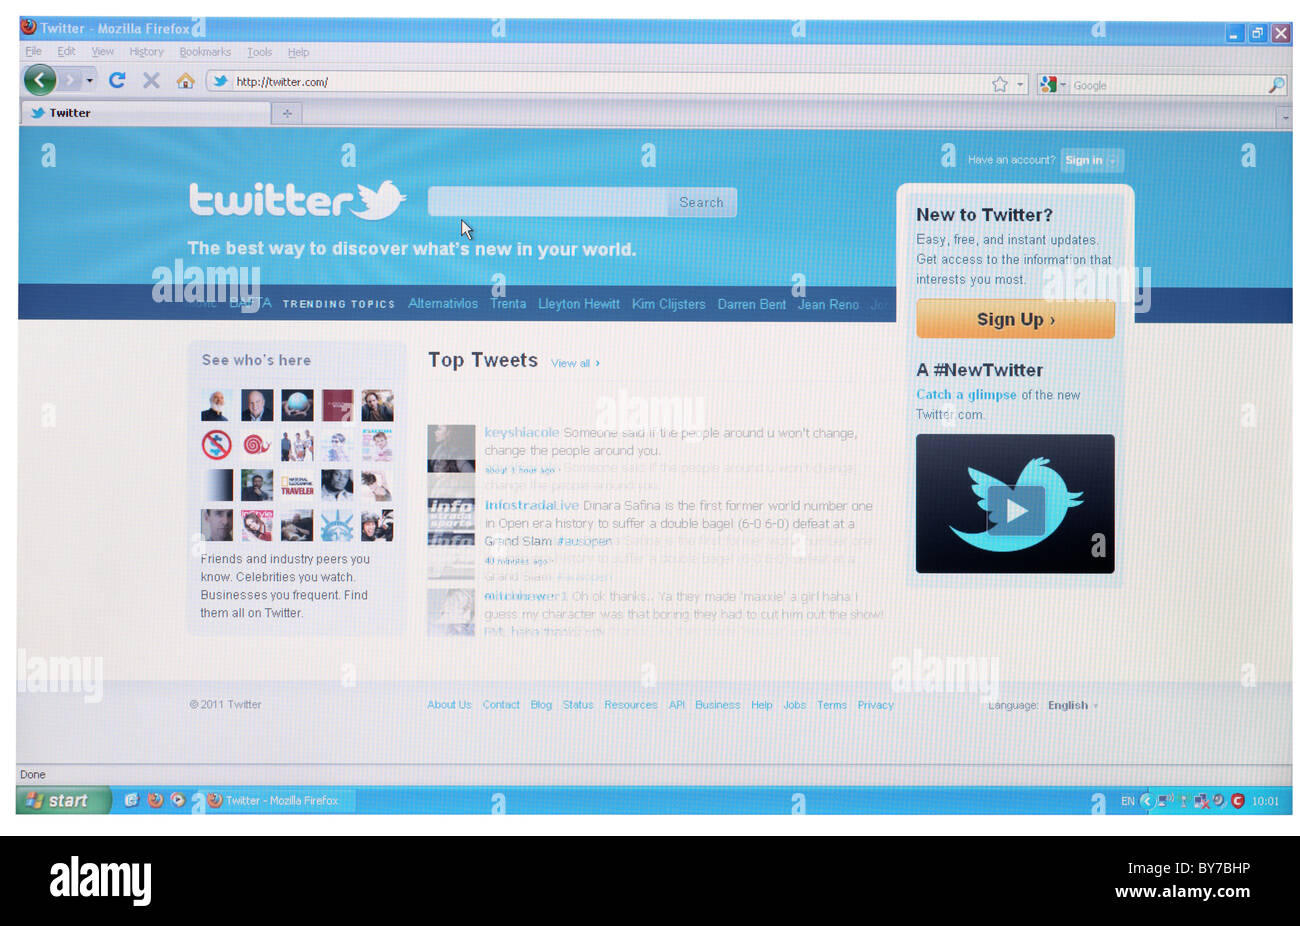 Full screen shot of home page of Twitter.com social networking website - Stock Image